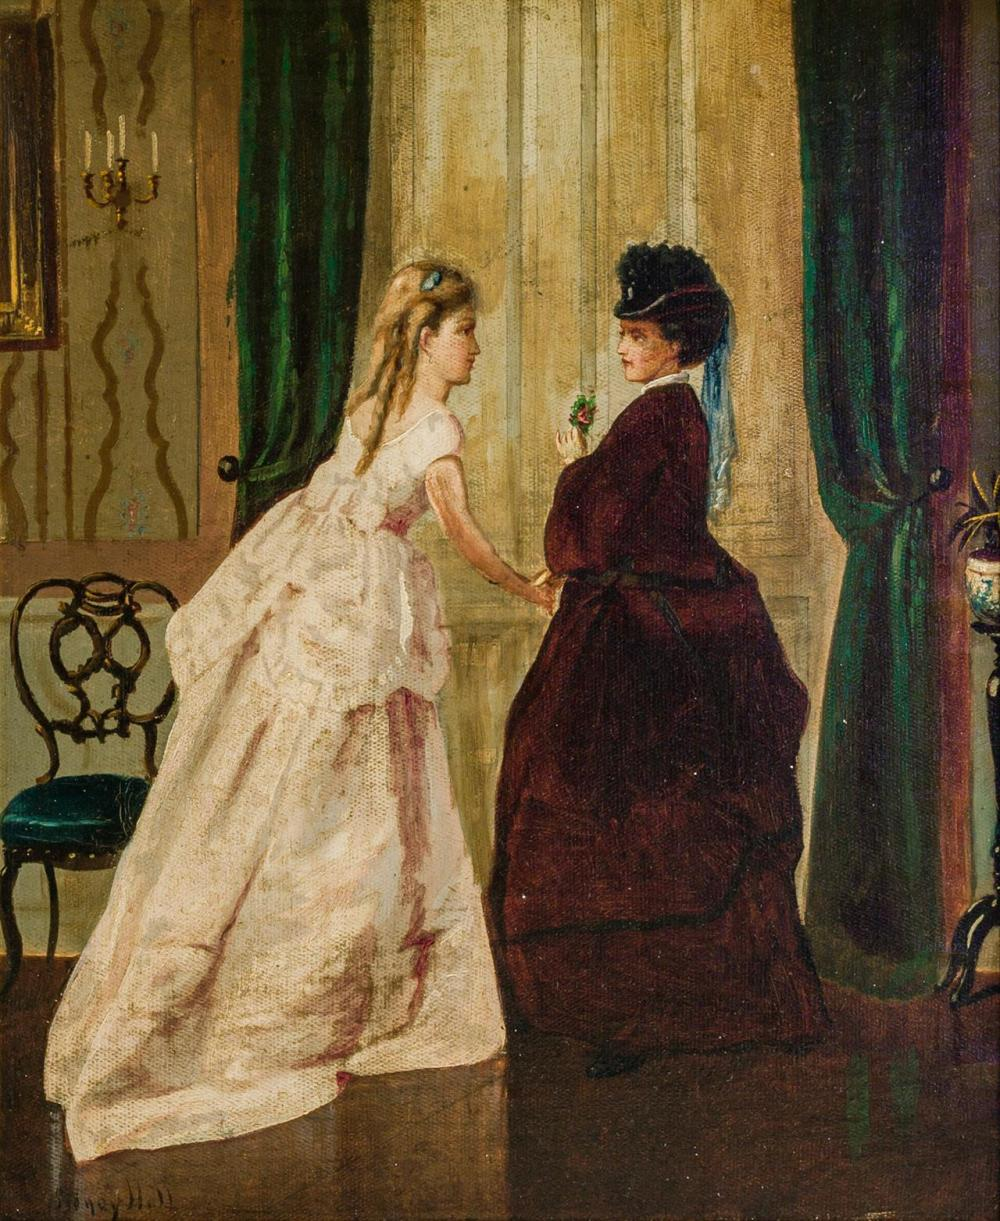 "GEORGE HENRY HALL, American (1825-1913), Confidences, oil on canvas, signed lower left ""Henry Hall"", 17 x 14 1/4 inches"